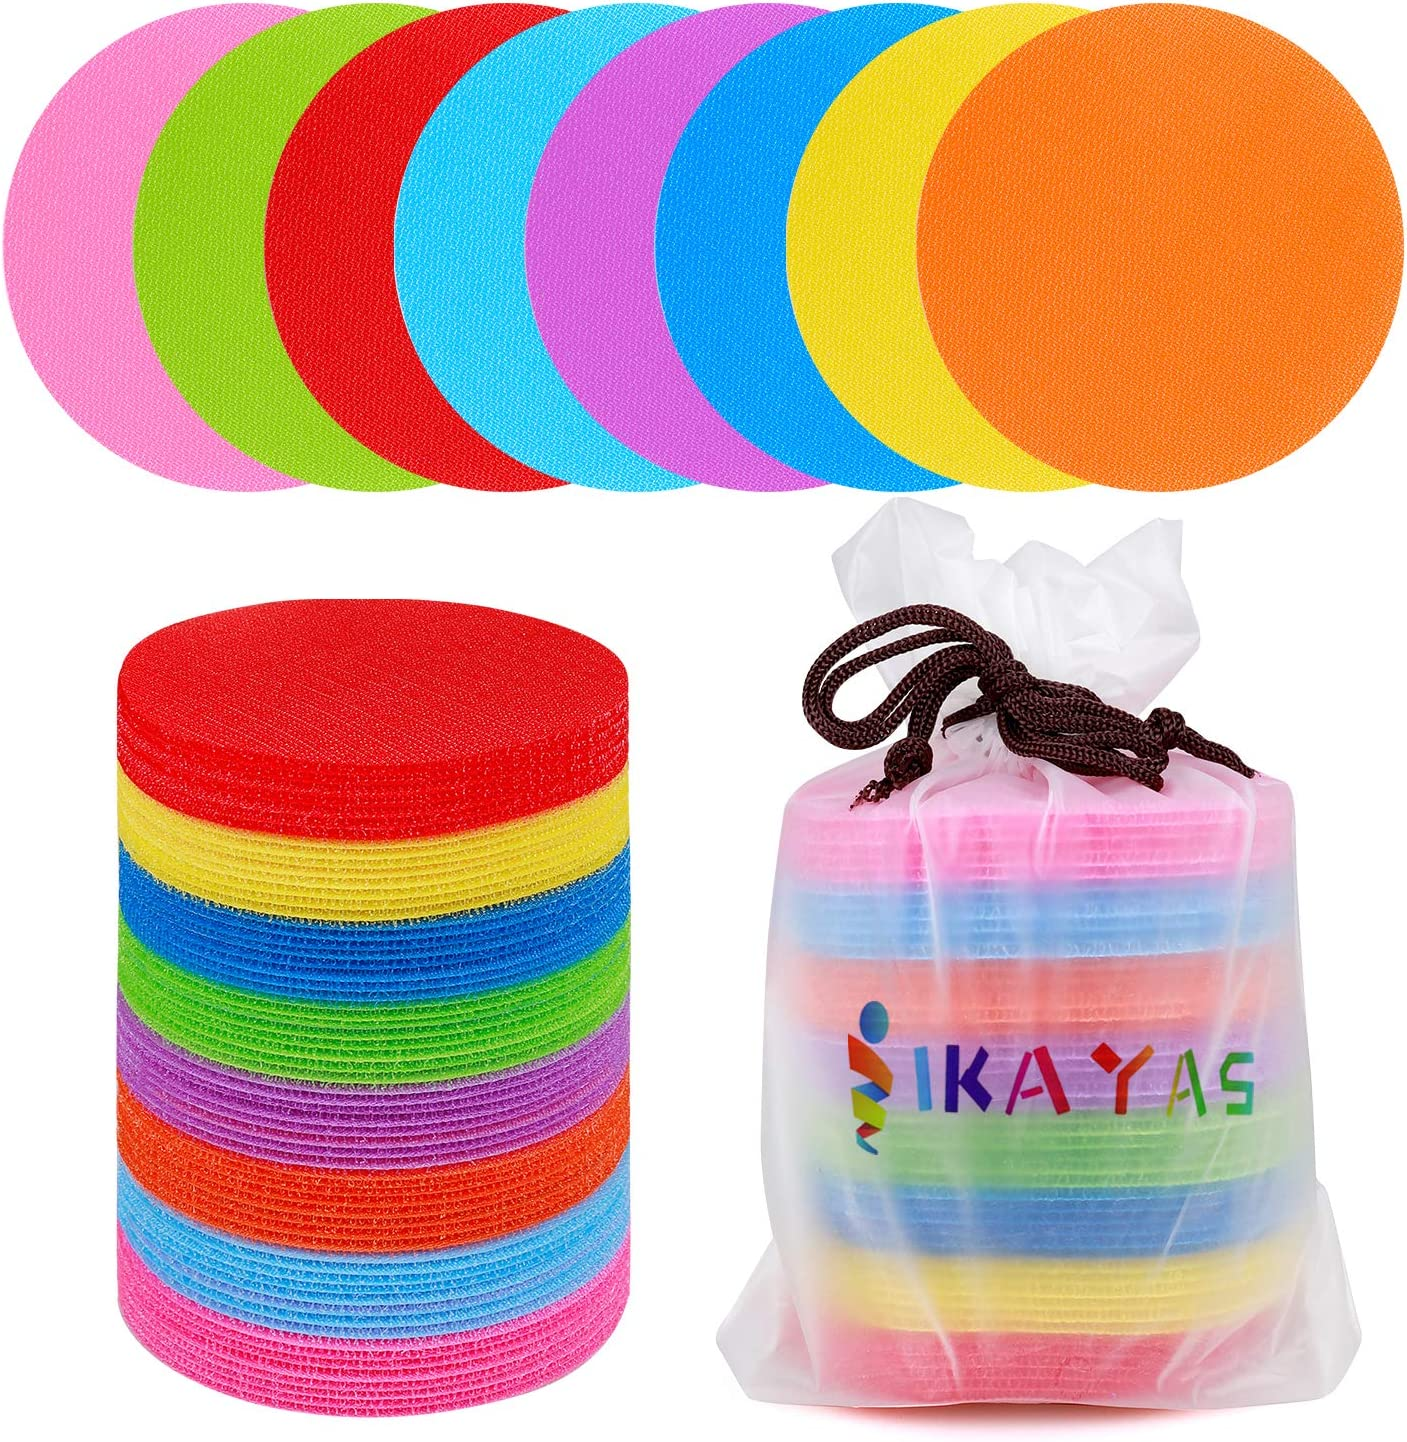 IKAYAS 64 Pcs Carpet Standing Dot Standing Spots Carpet Stanidng Spots Markers, Carpet Circles Dots Standing Dots Spots Circle Spots for Kids, 8 Colors